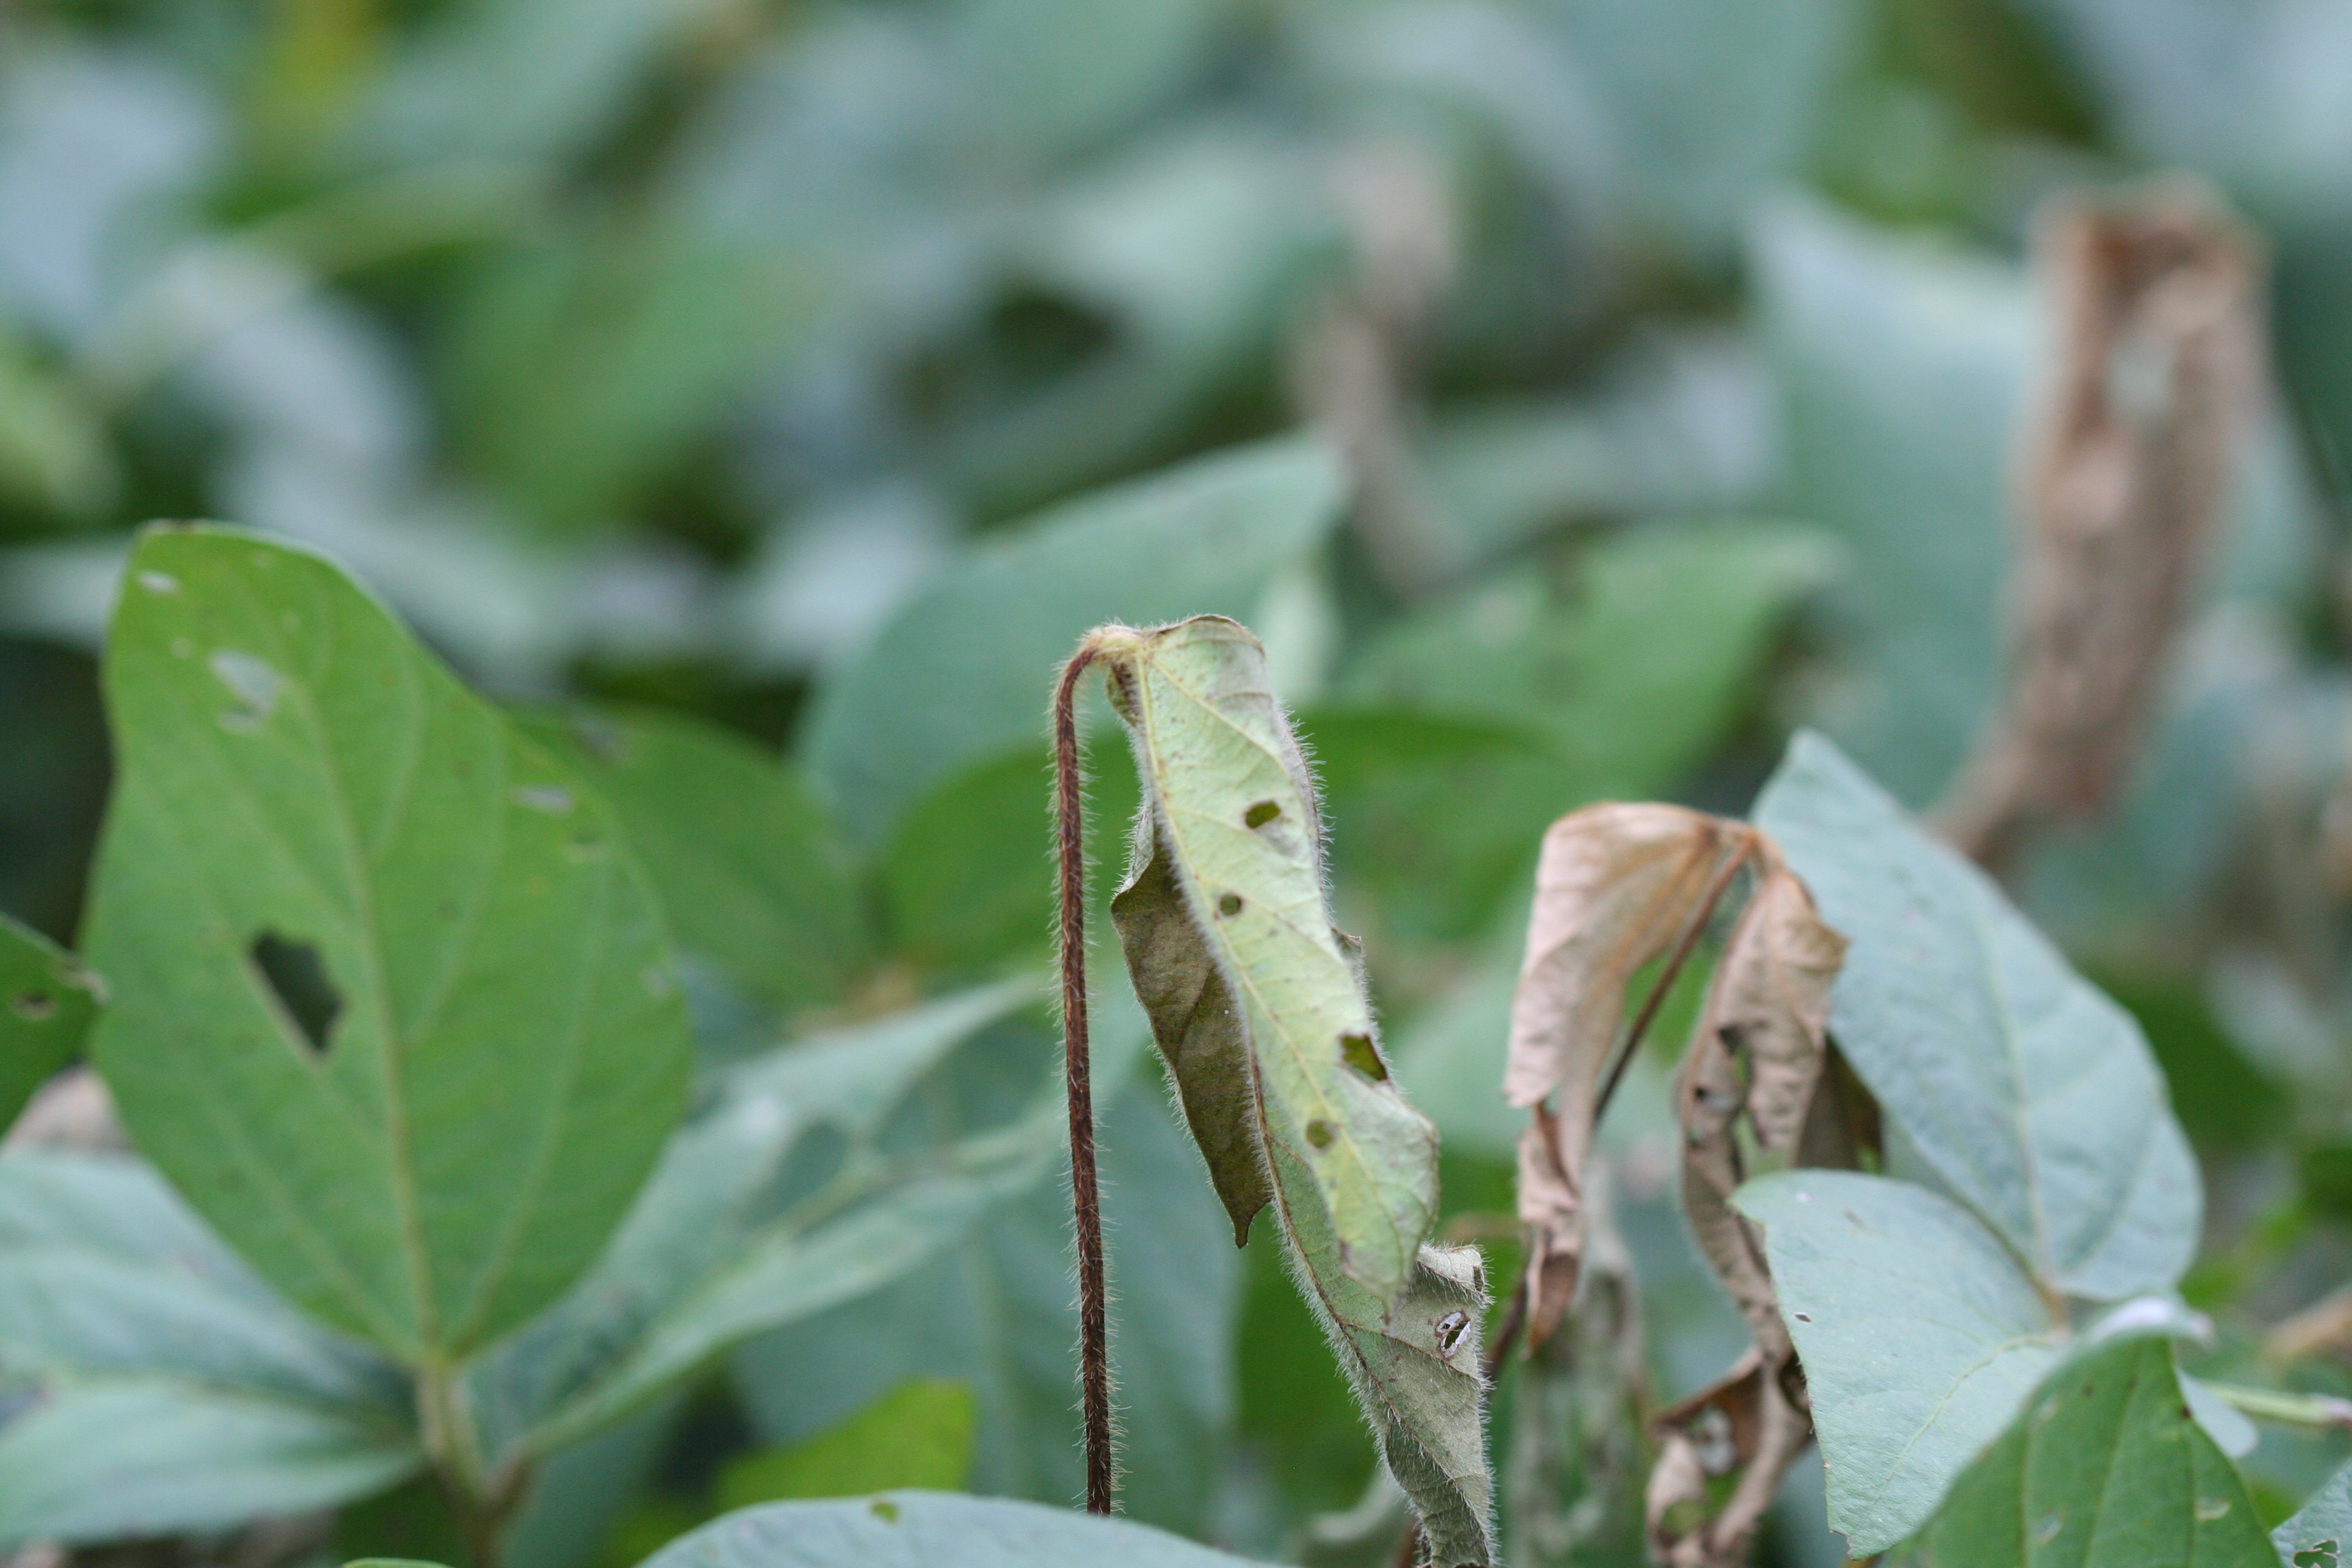 Shepherd's crooking of foliage is a symptom of anthracnose stem blight.